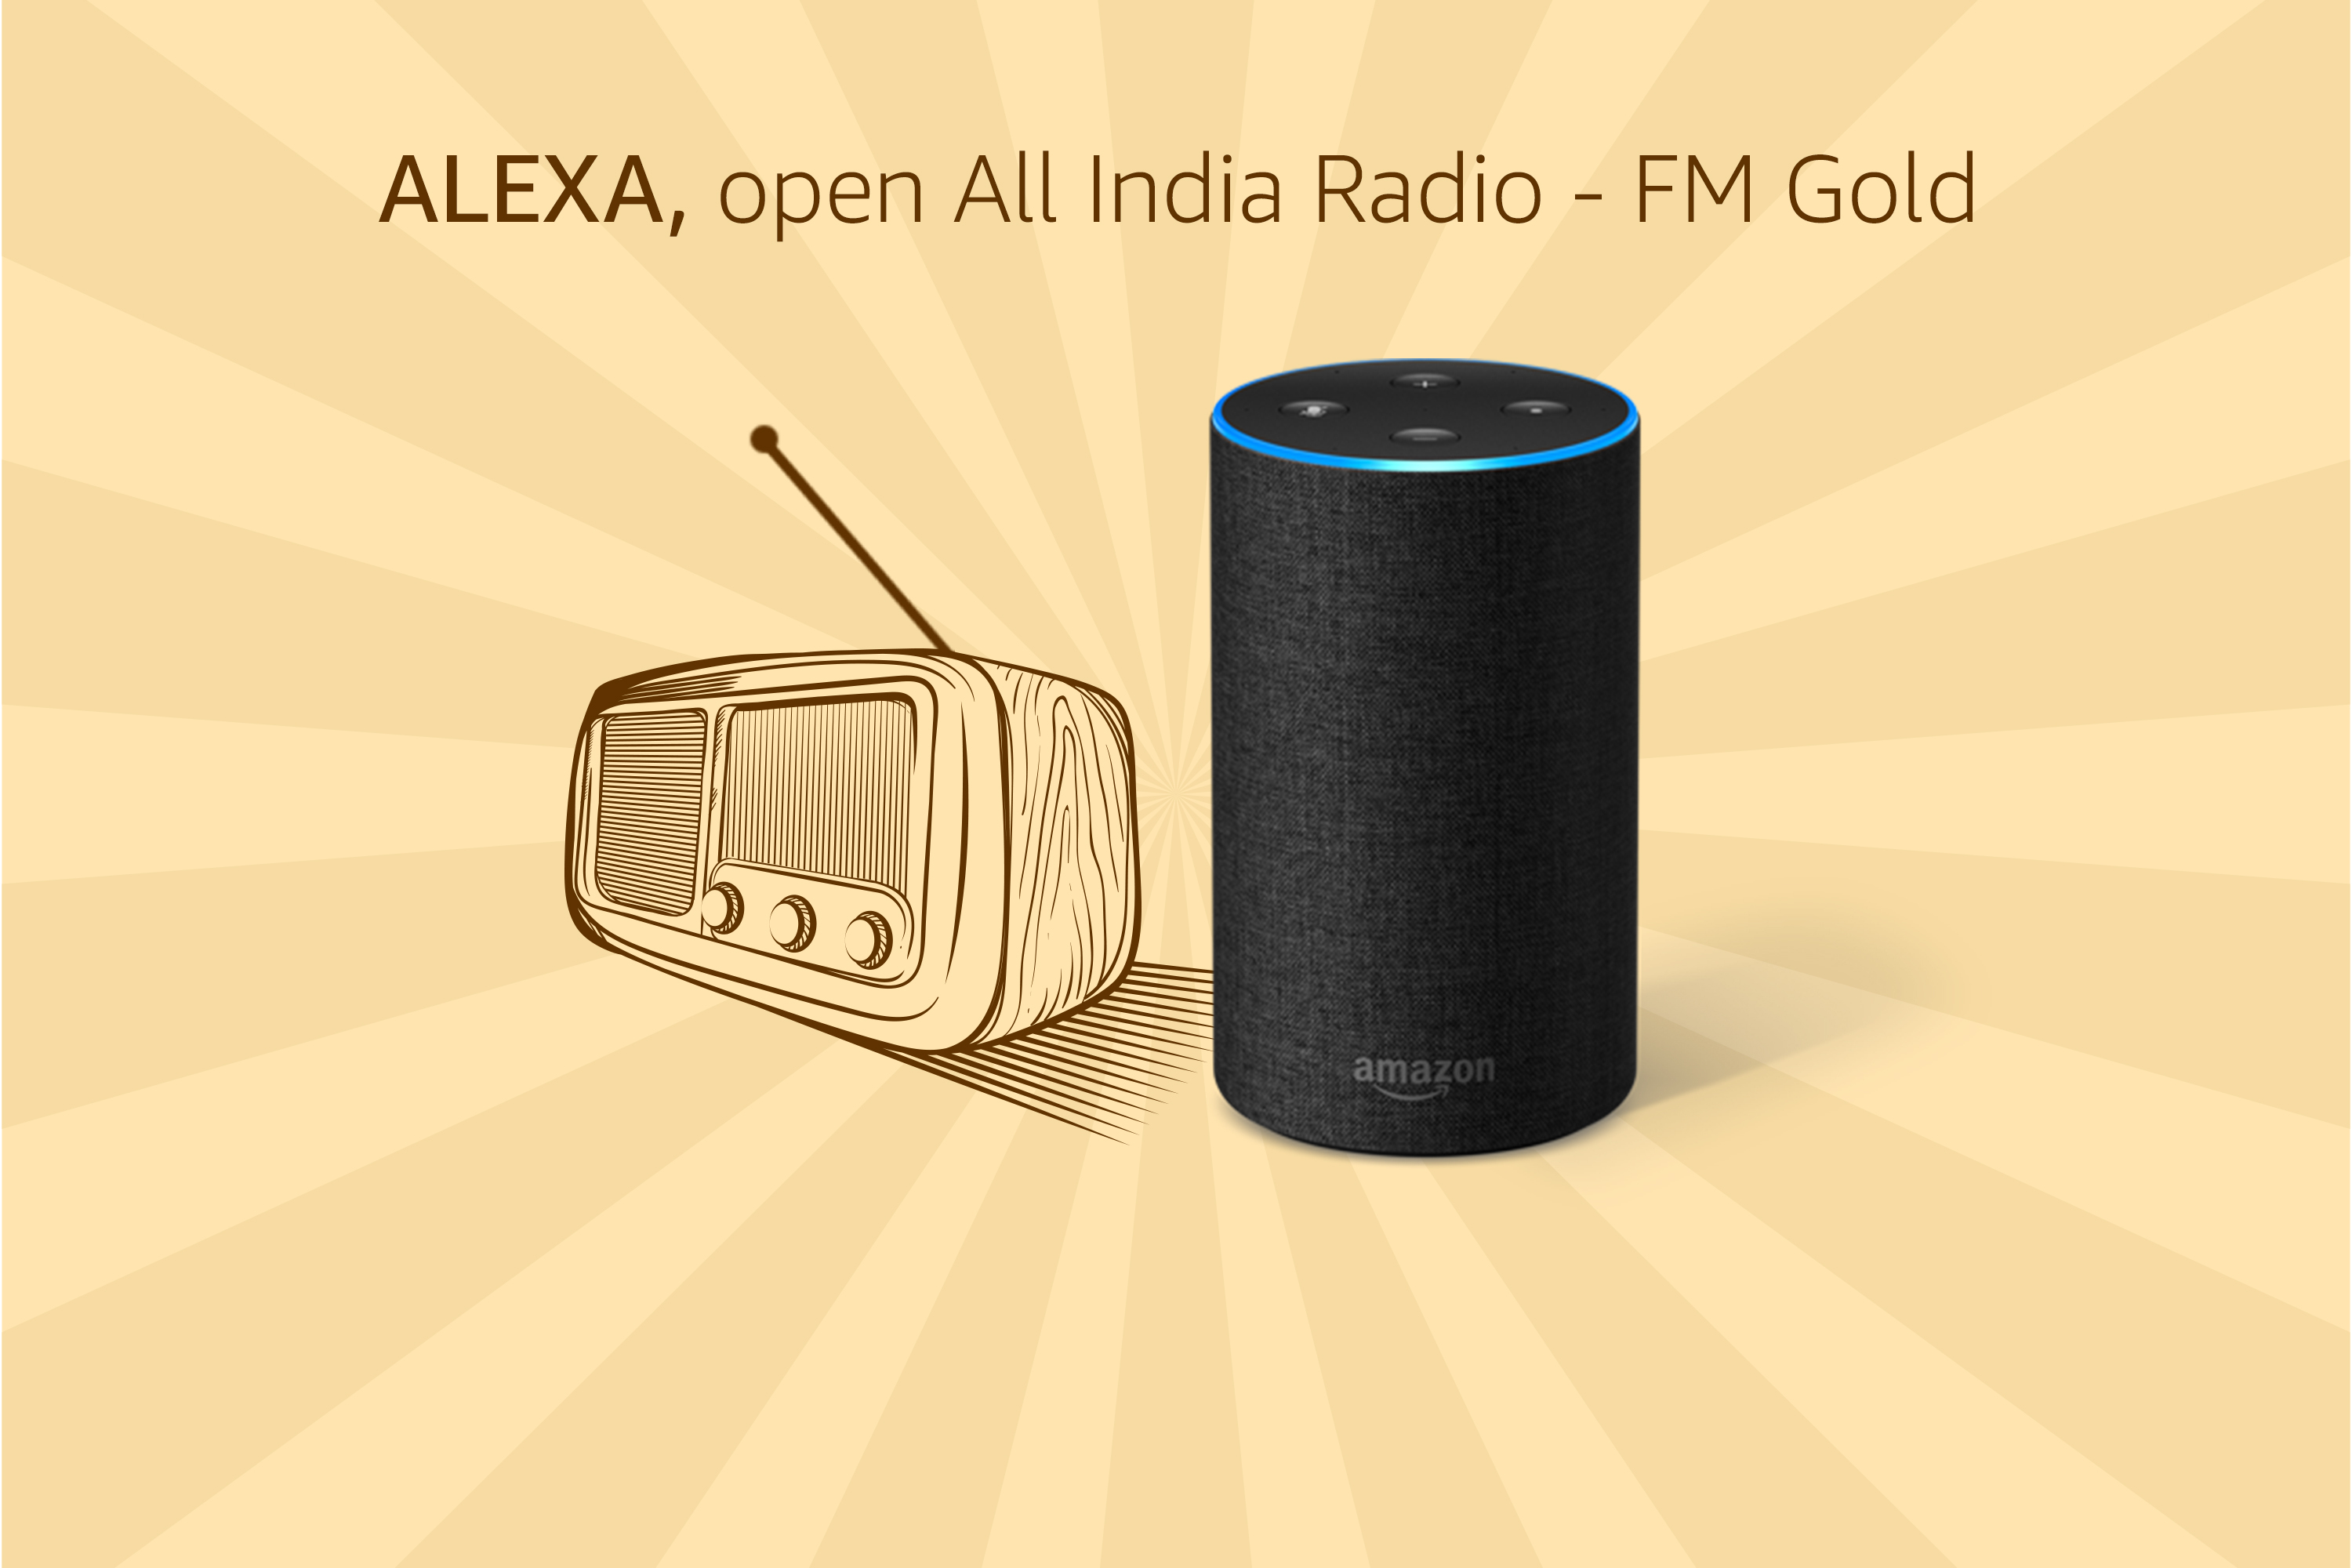 Access over 350 radio stations with Alexa in India